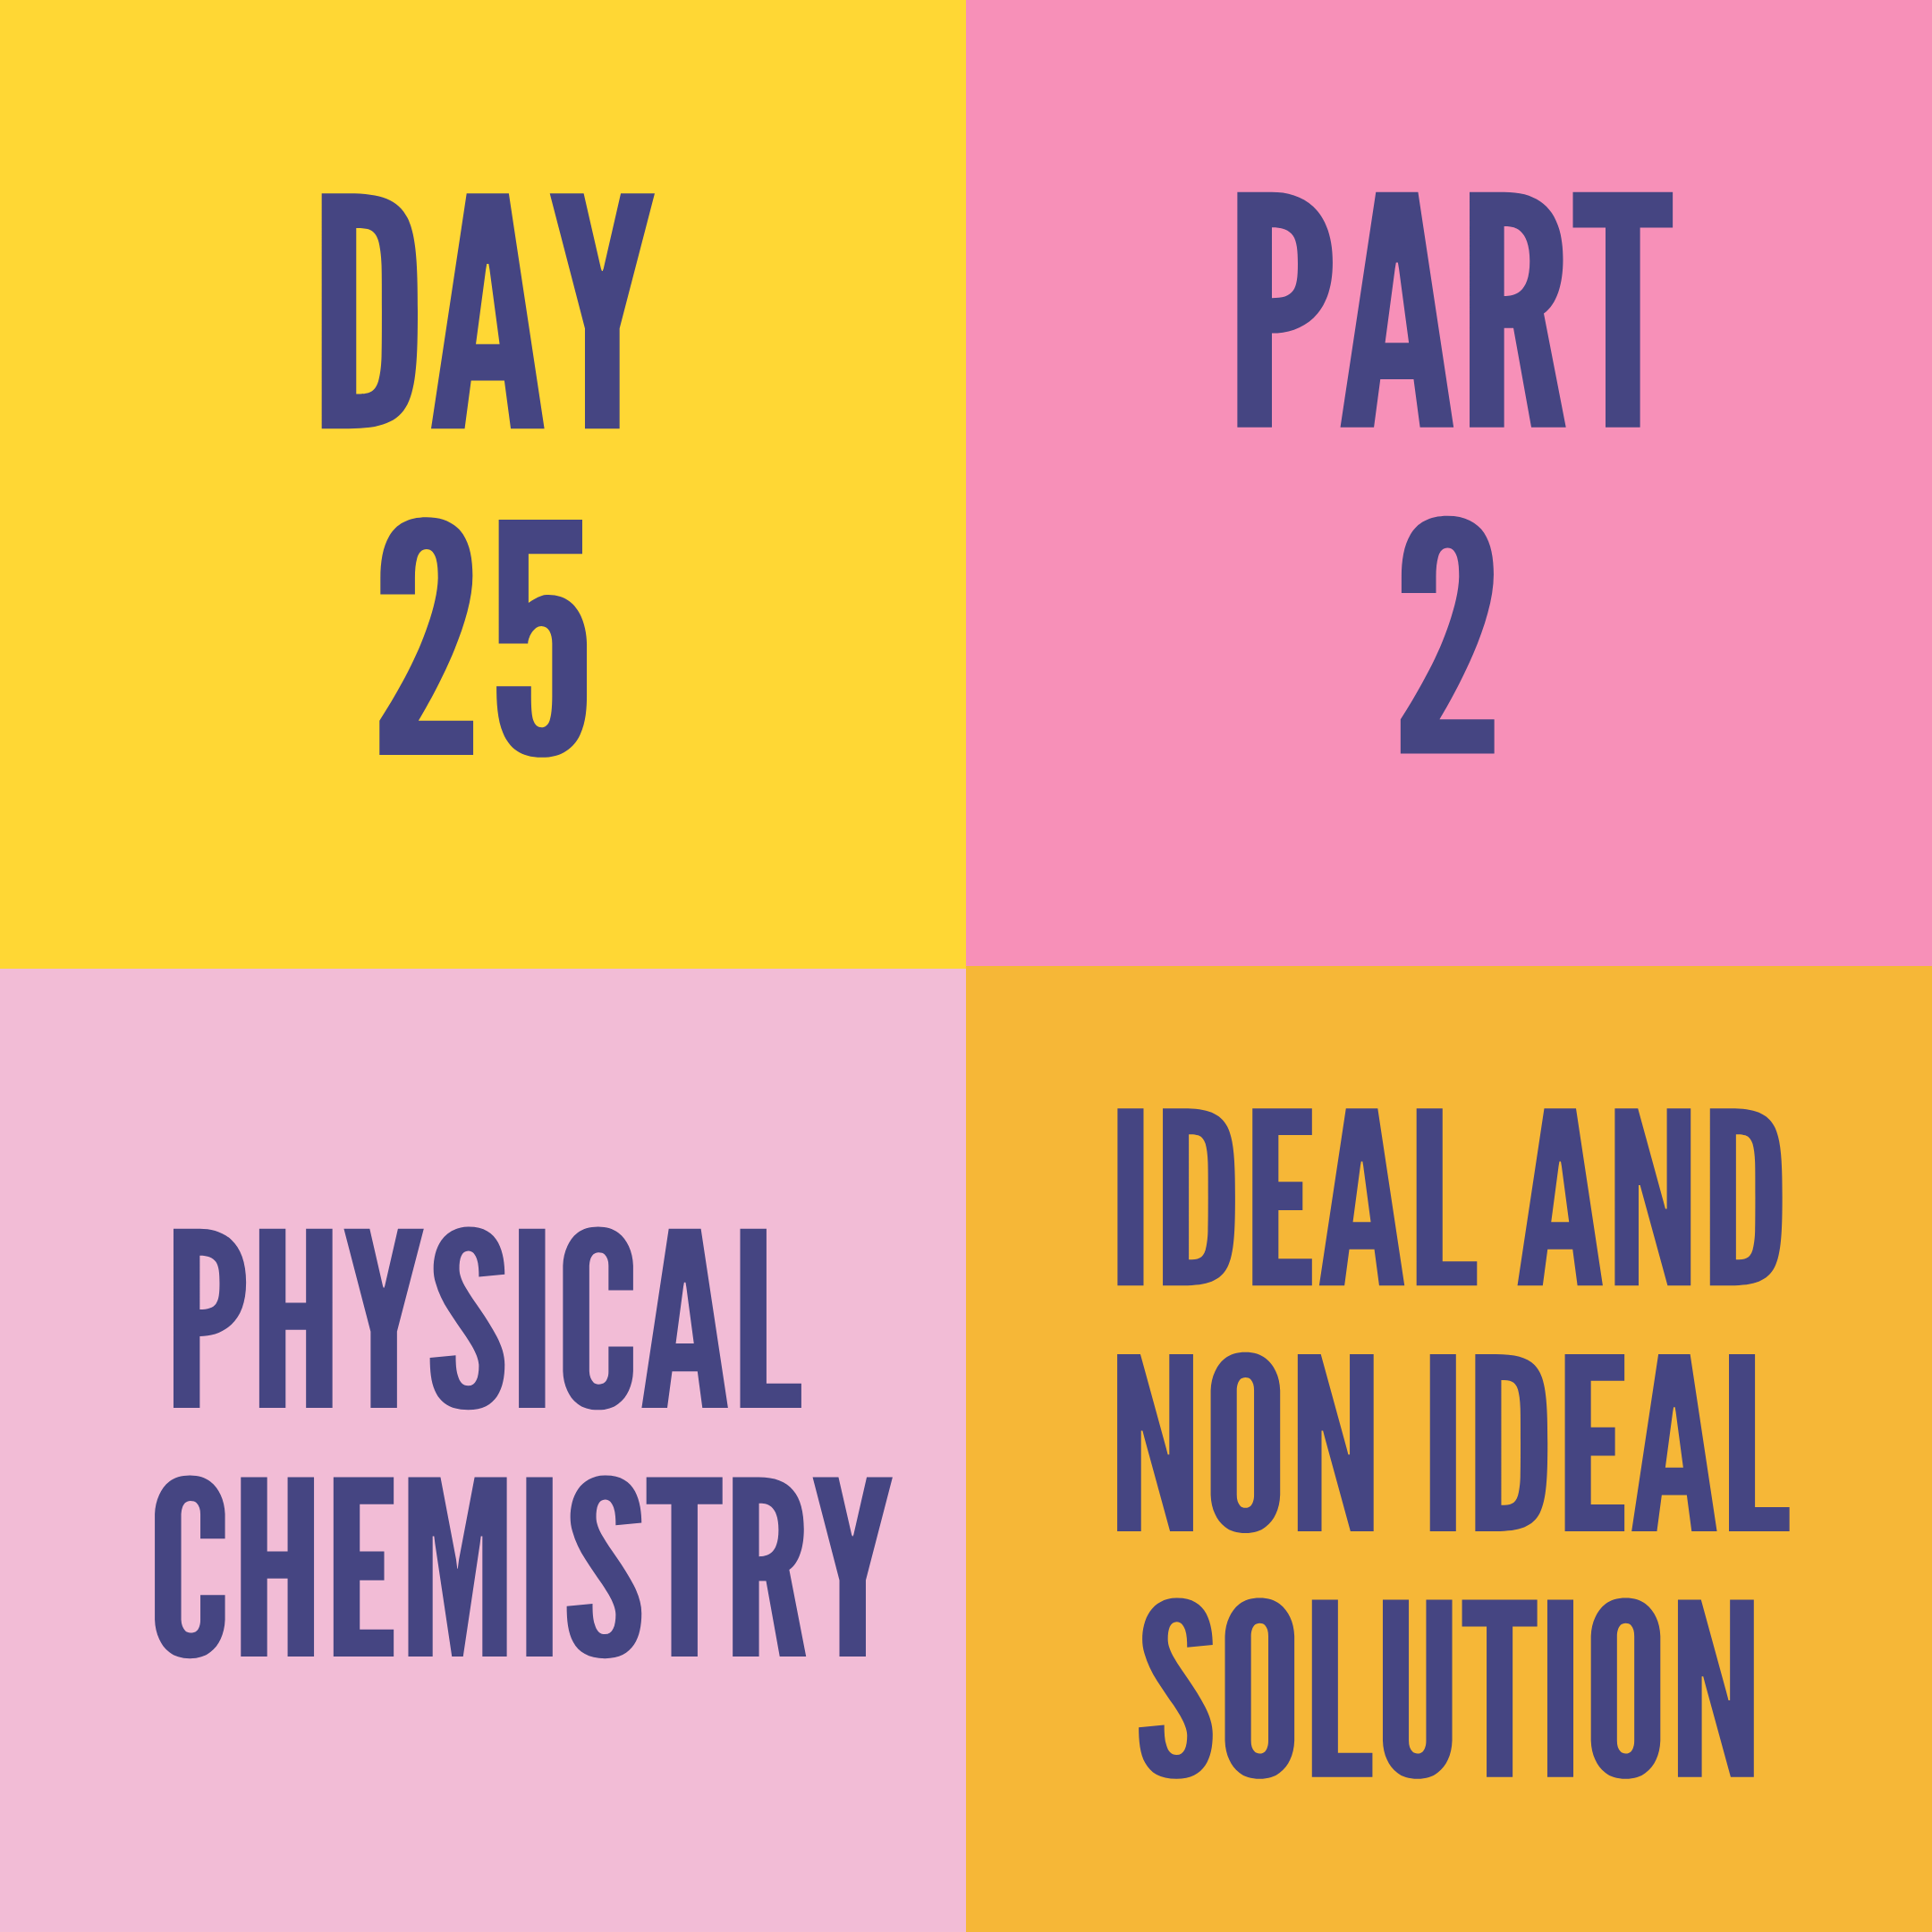 DAY-25 PART-2 IDEAL AND NON IDEAL SOLUTION